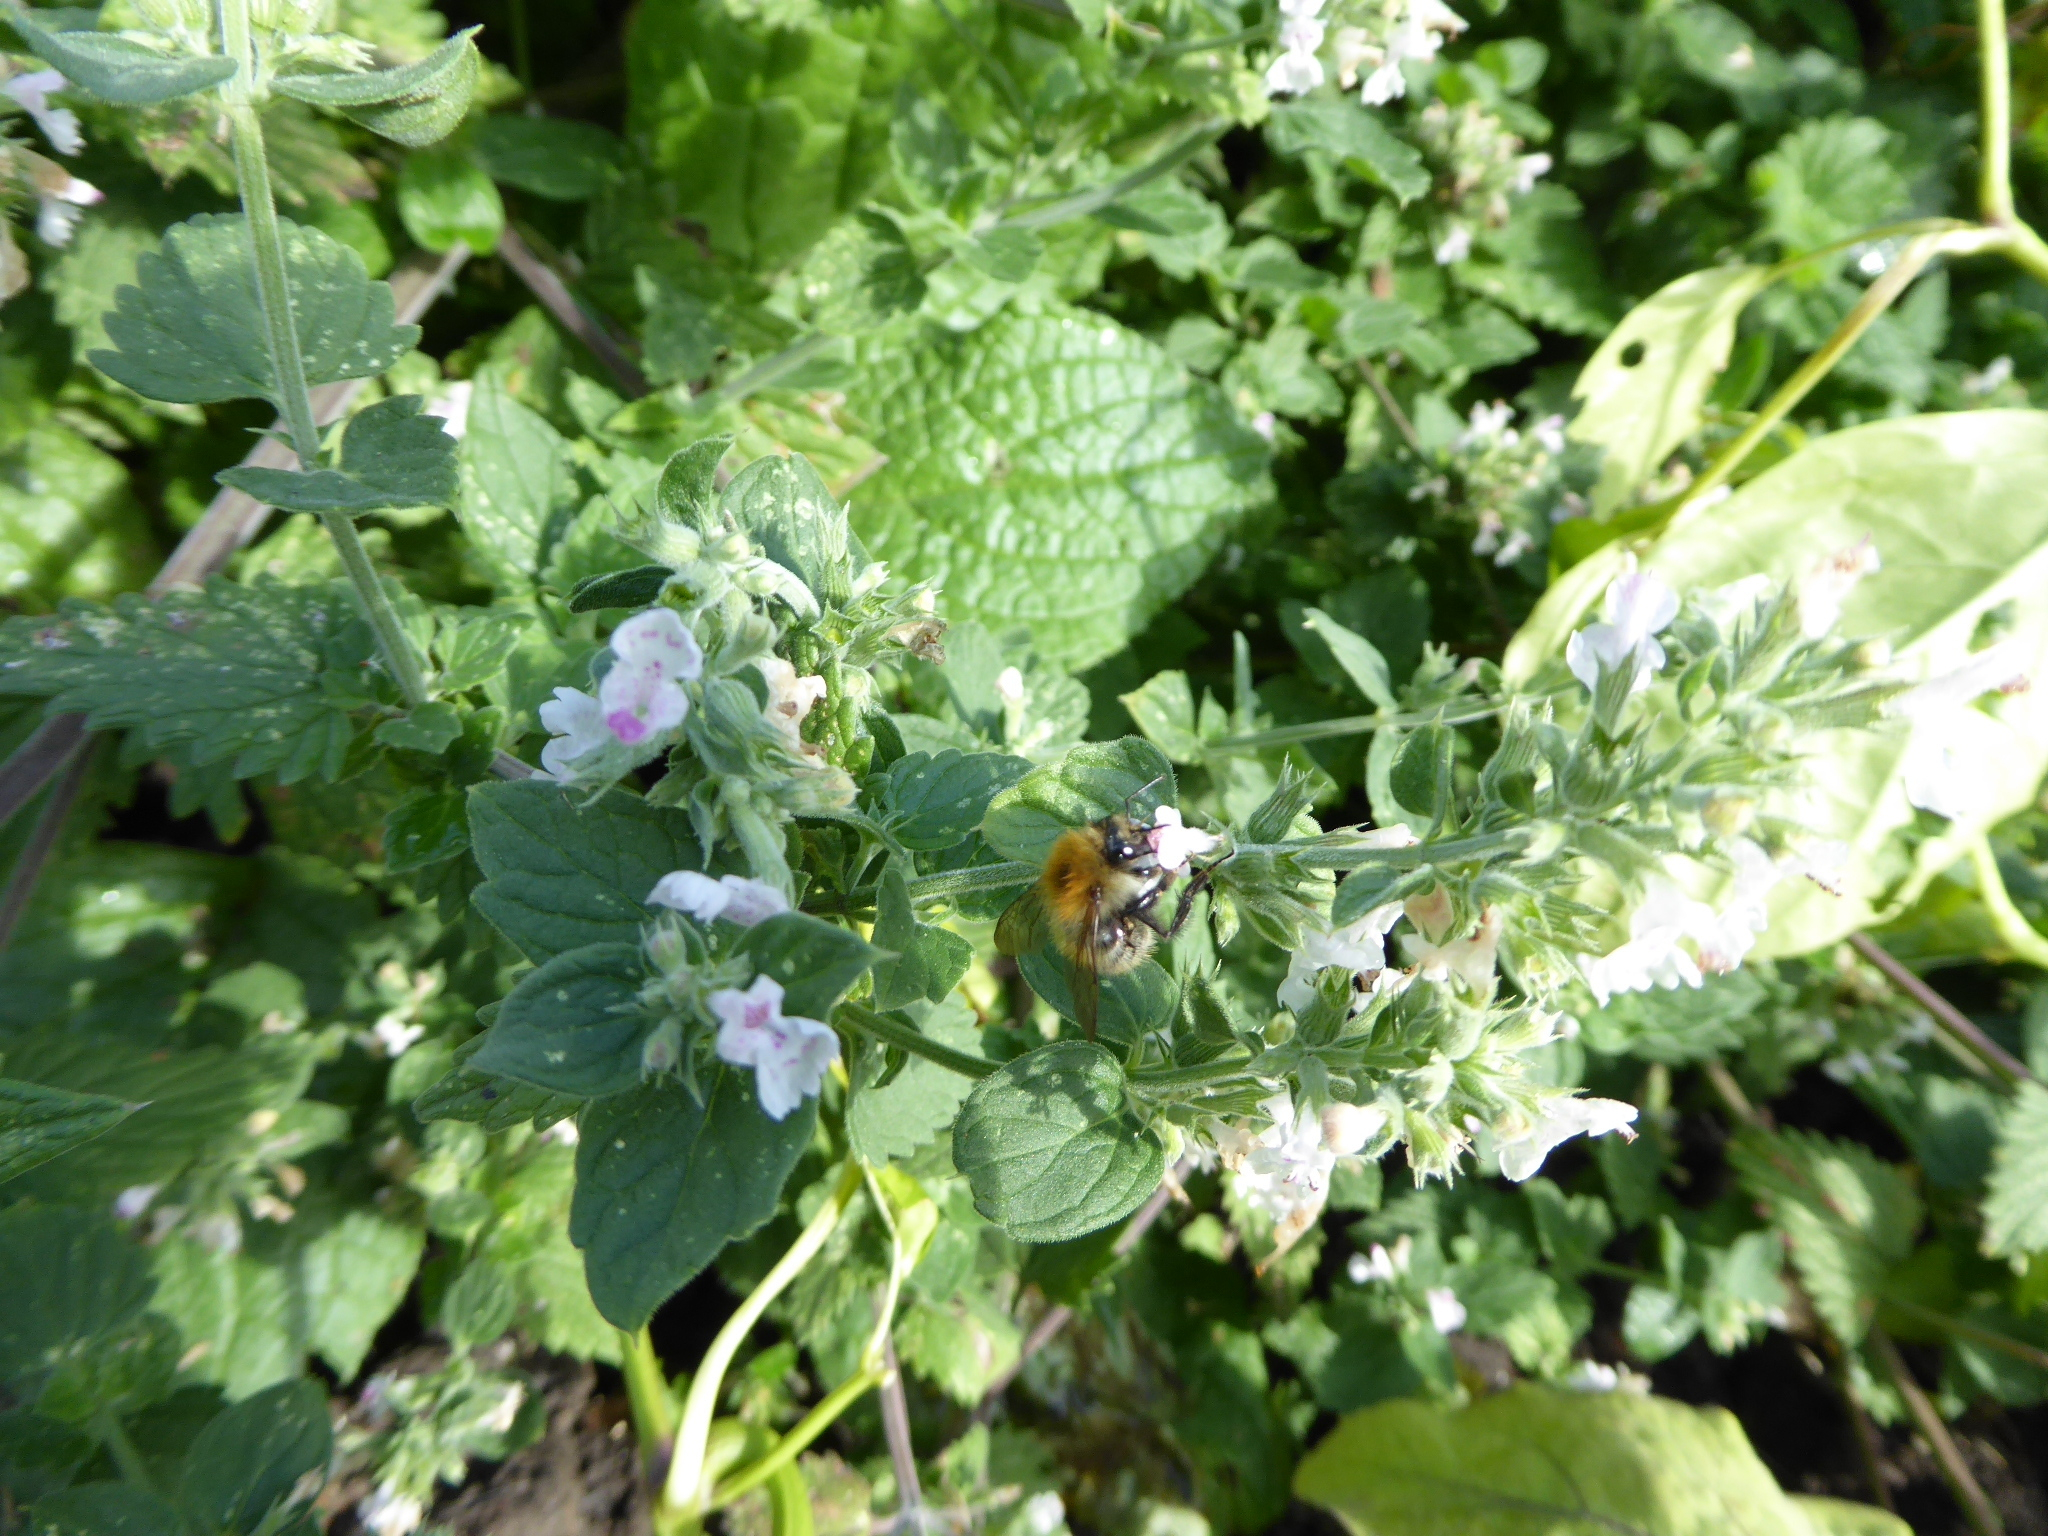 Catnip_with_Carder_bumblebee_AM_Oct18